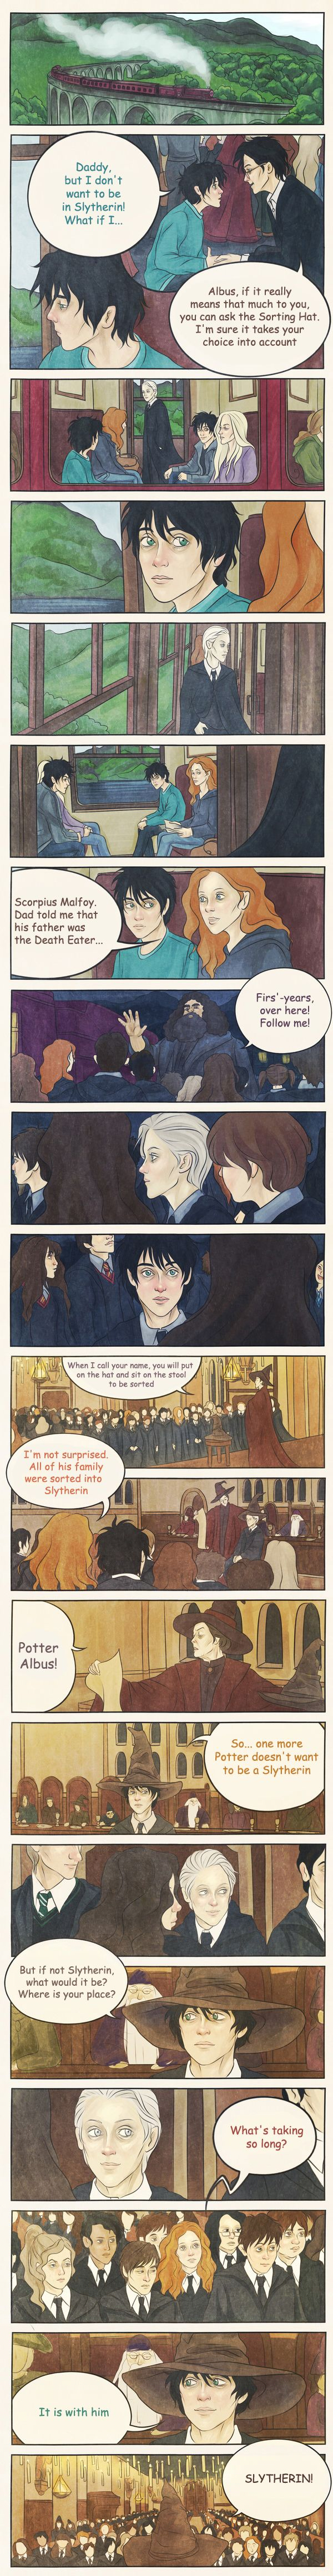 Albus Severus Potter and Scorpius Malfoy. Not Slytherin? by AnastasiaMantihora.deviantart.com on @DeviantArt